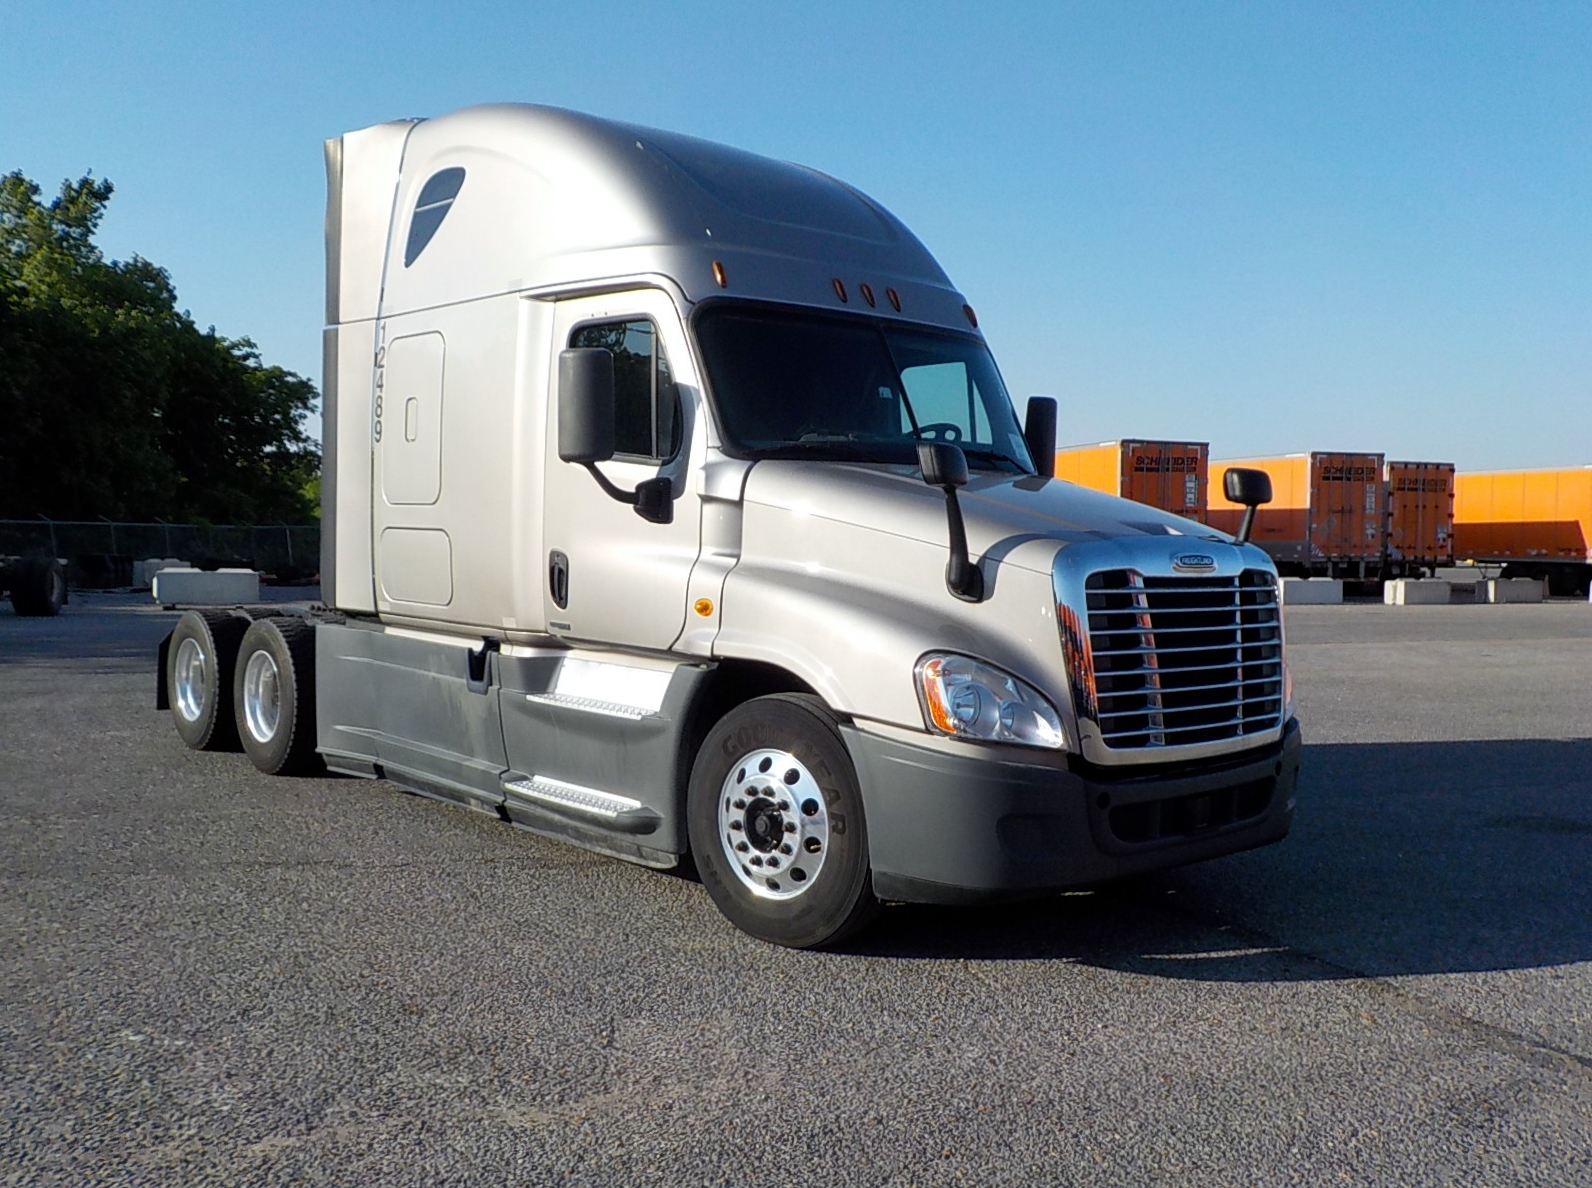 USED 2014 FREIGHTLINER CASCADIA SLEEPER TRUCK #84563